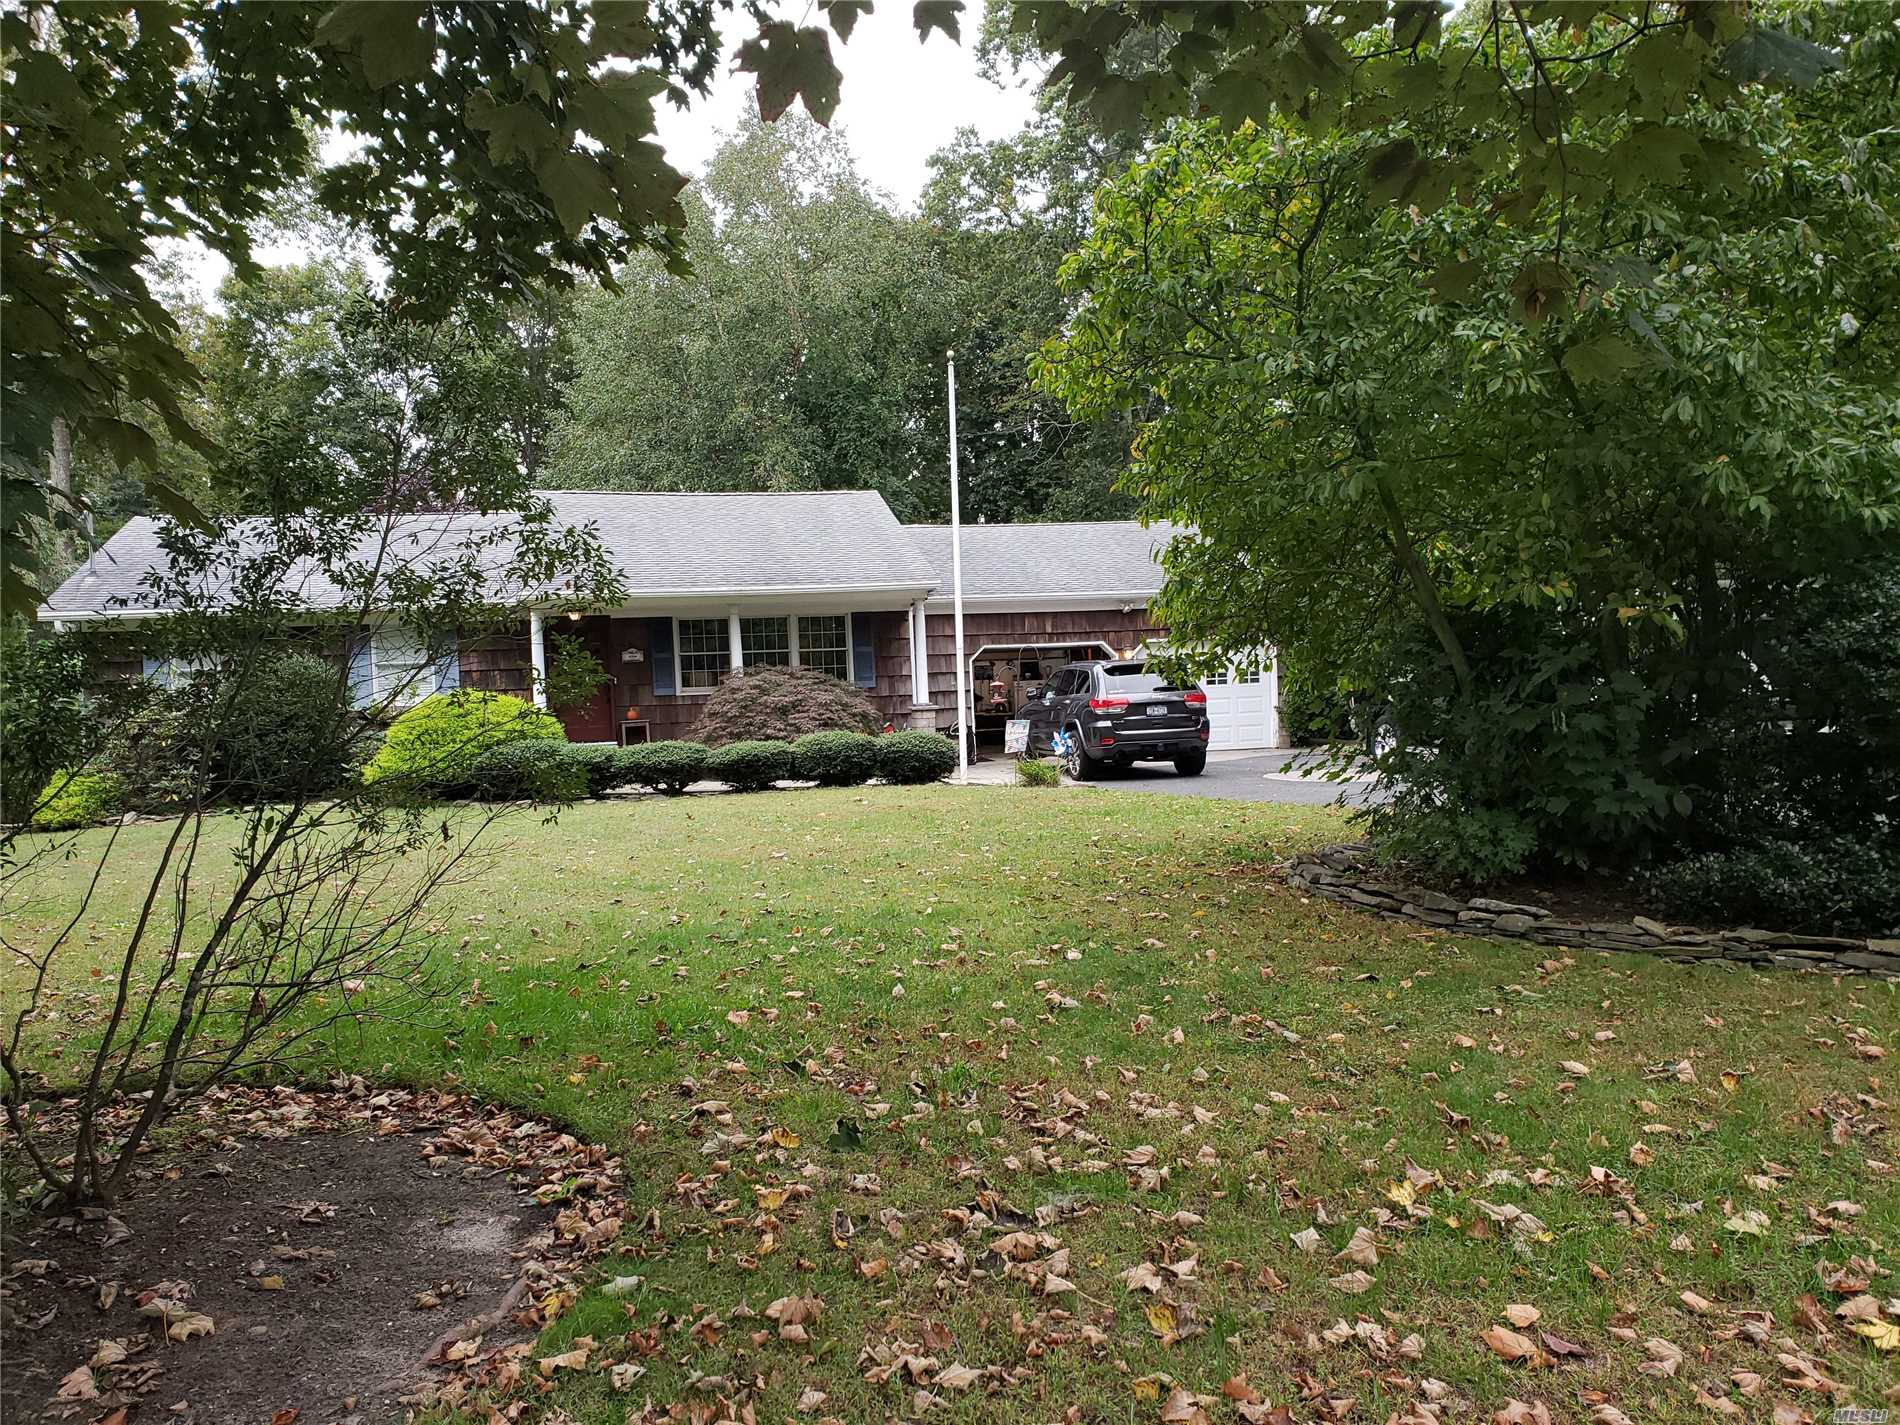 Photo of home for sale at 8 Annette Ln, East Moriches NY